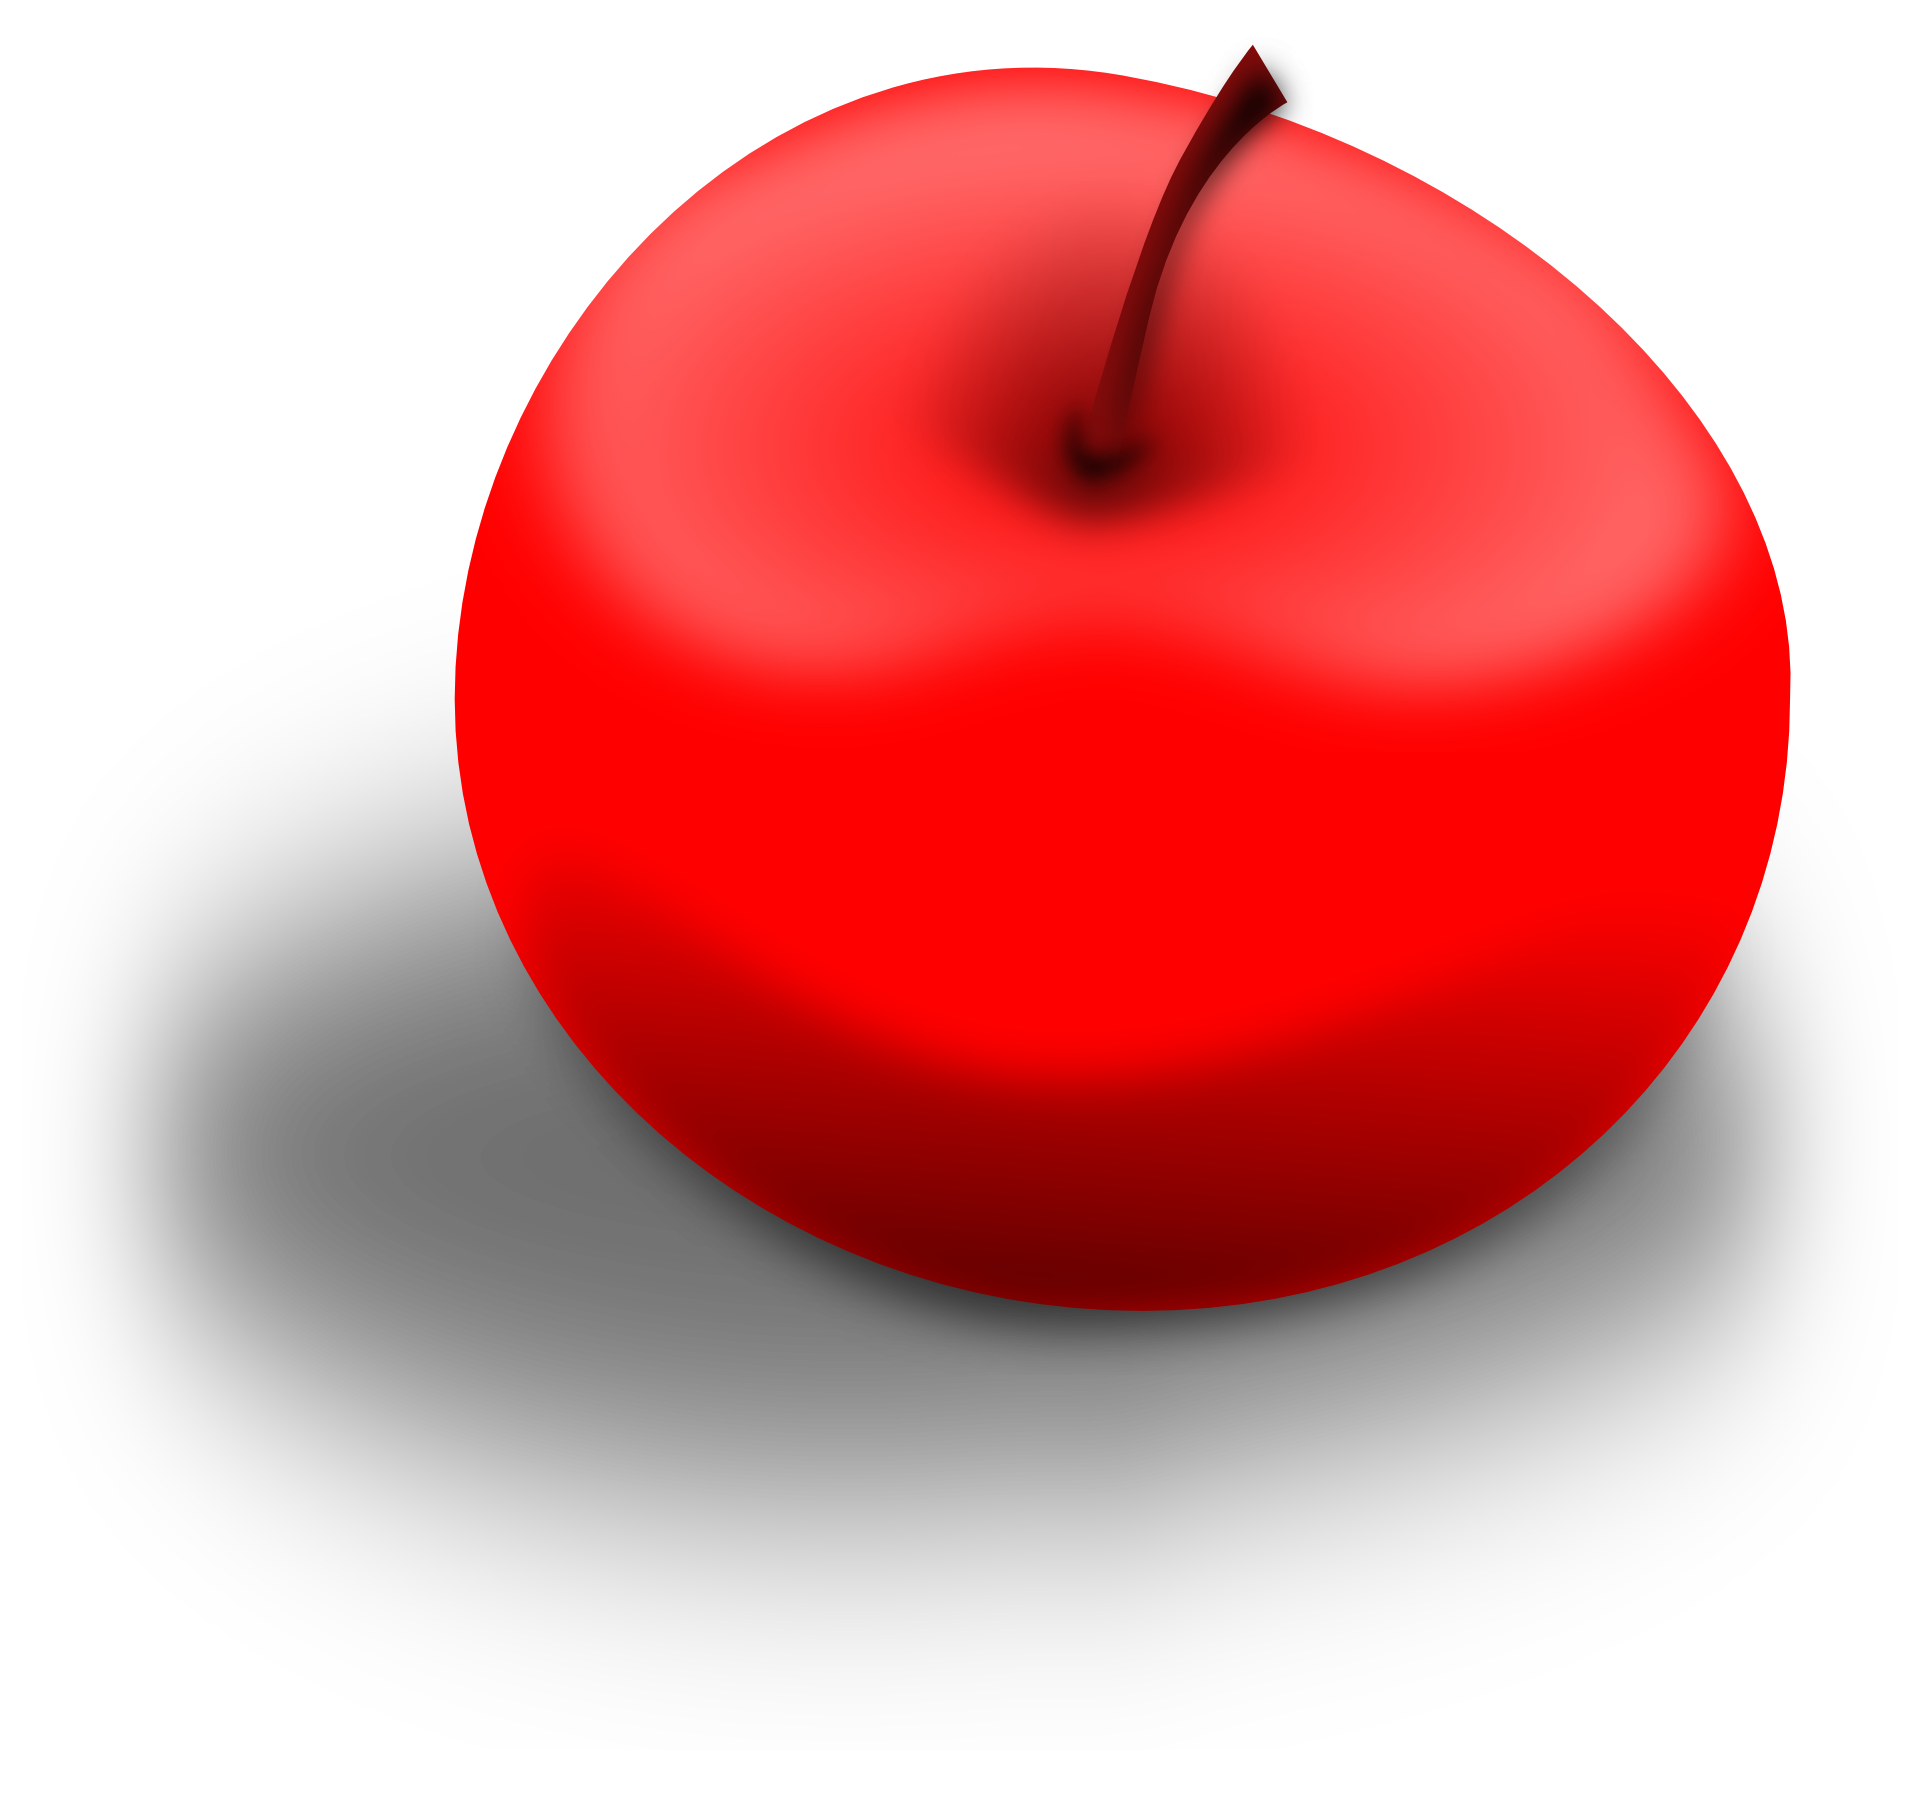 Drawing shade food. Of a red apple